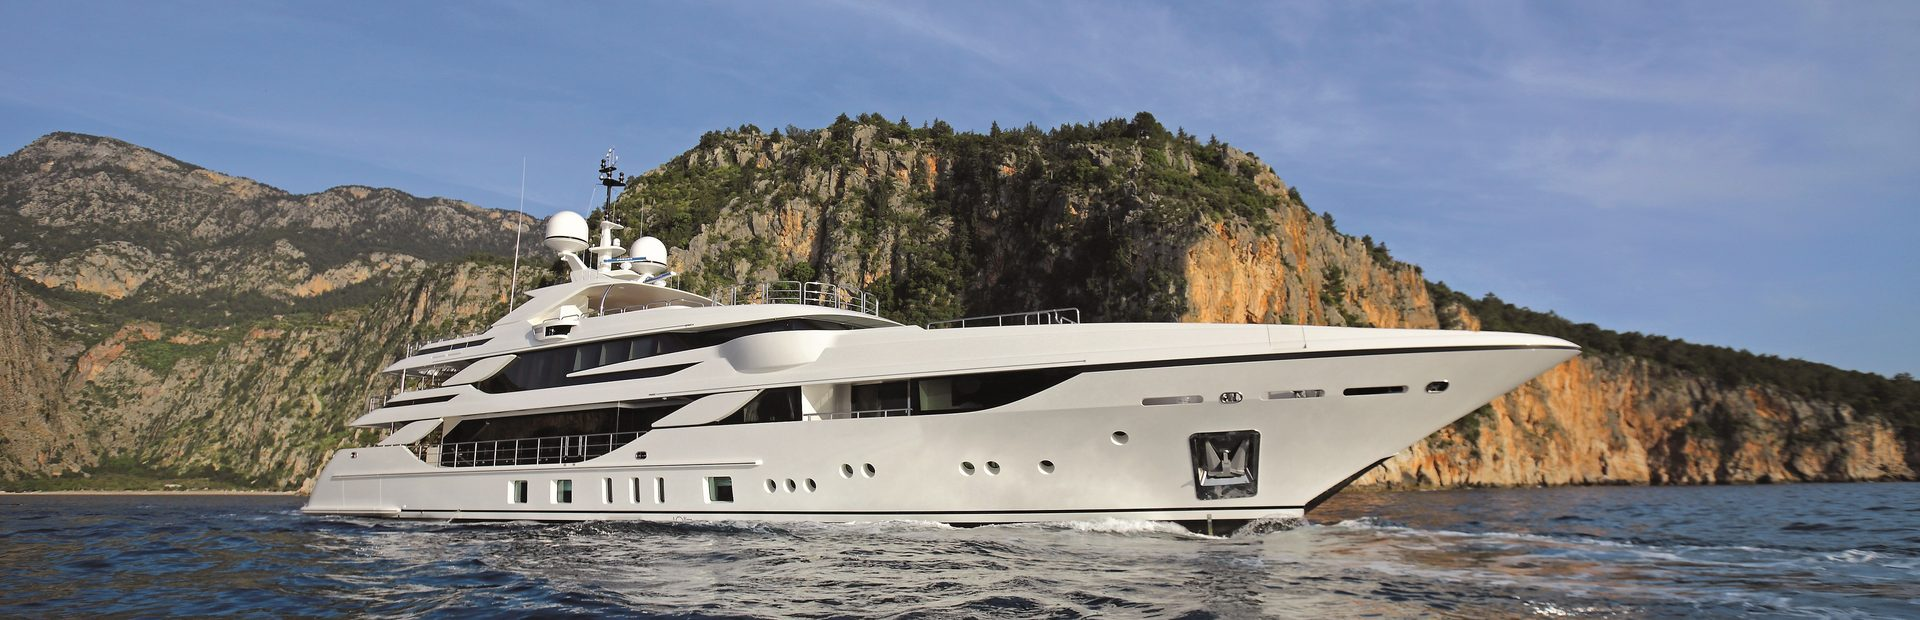 FB800 Series Yacht Charter